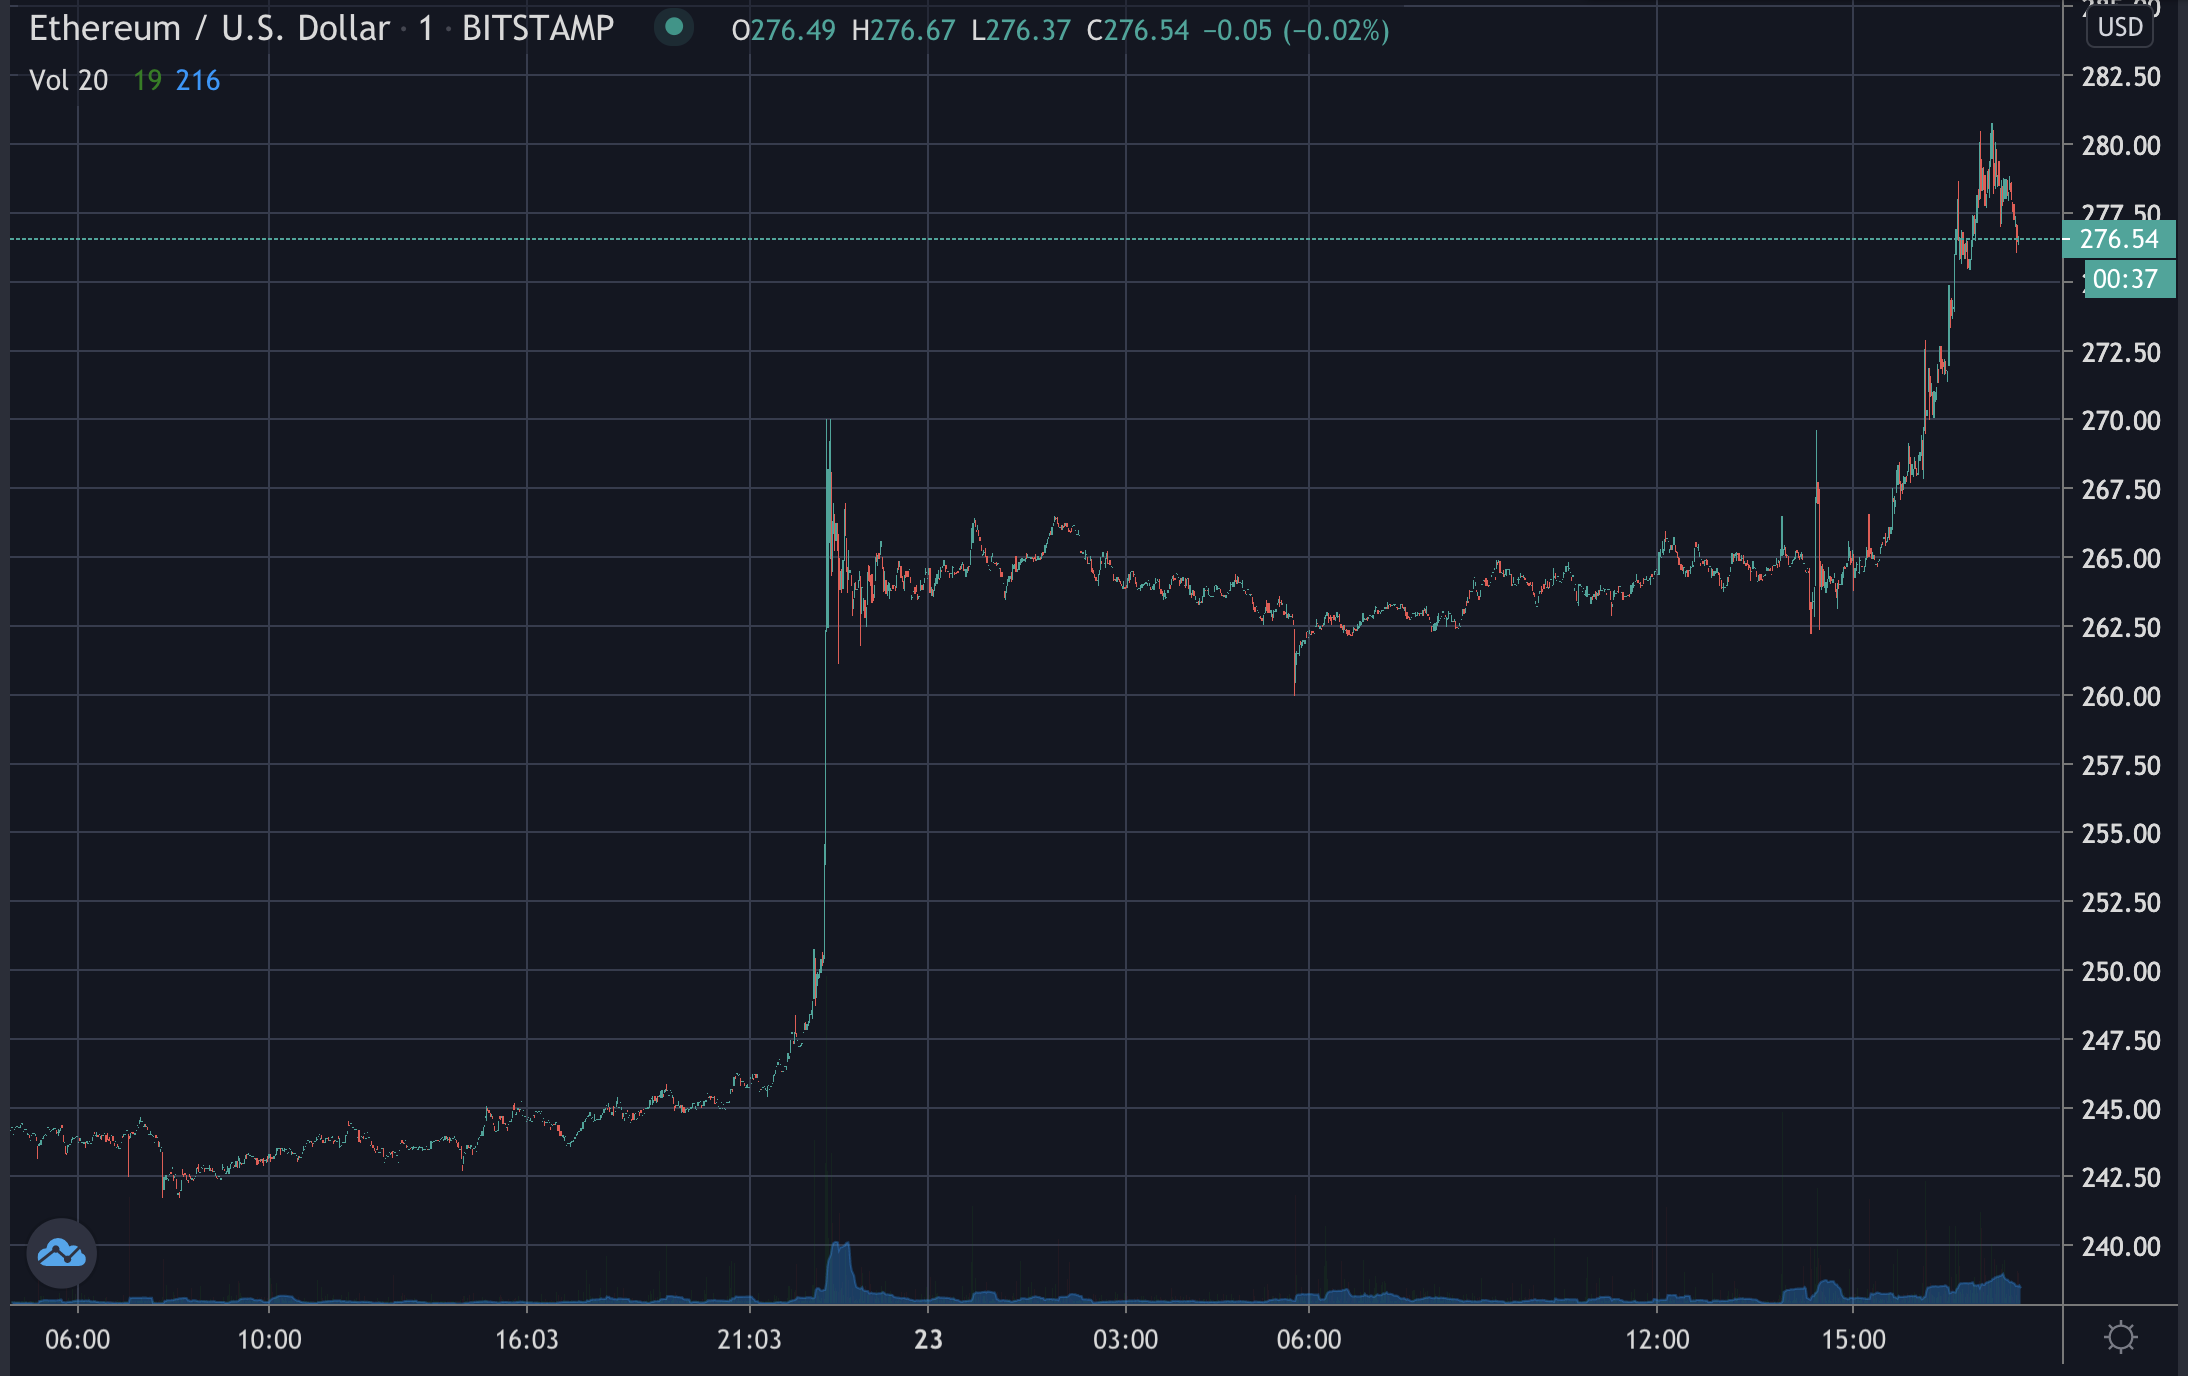 Eth one minute chart, July 2020